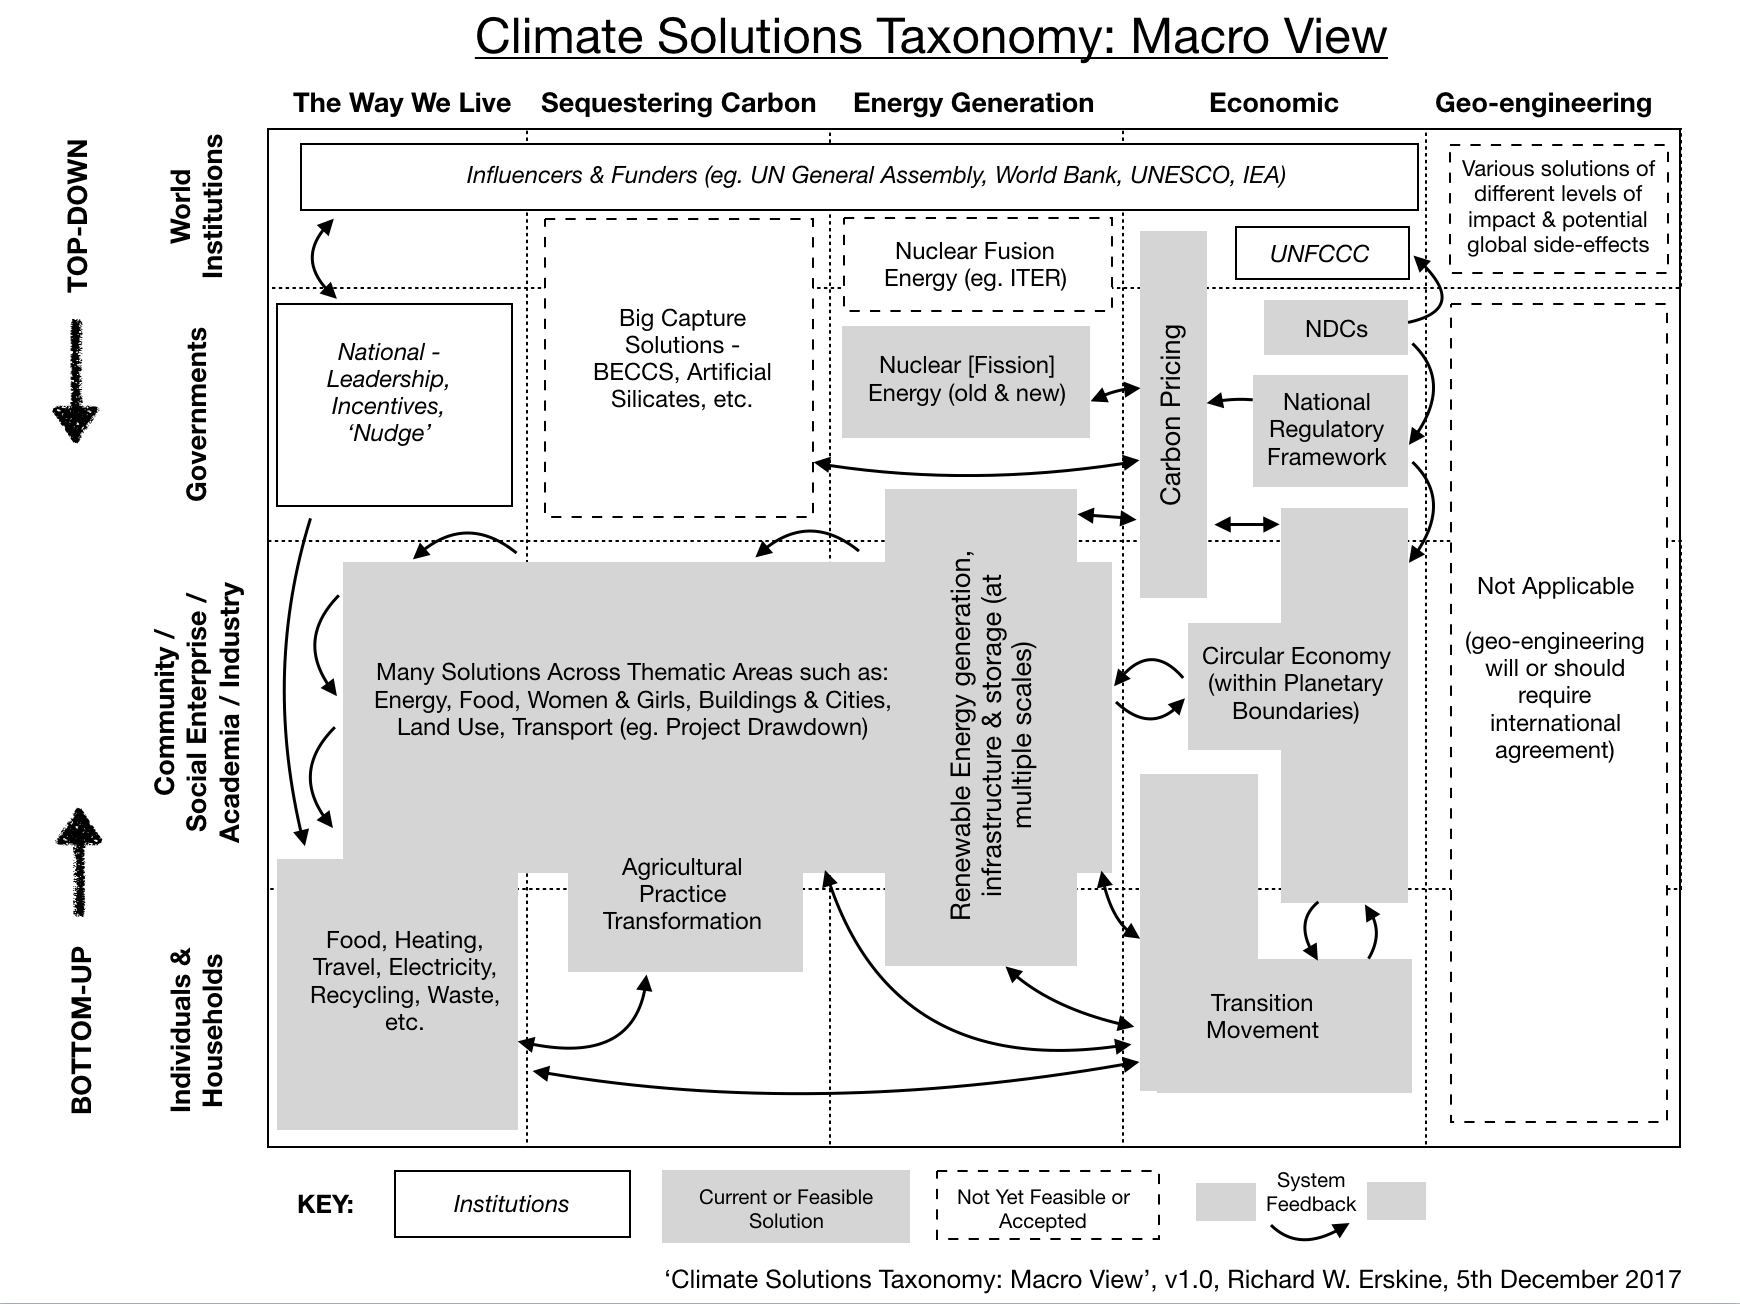 Climate Solutions Taxonomy macro view